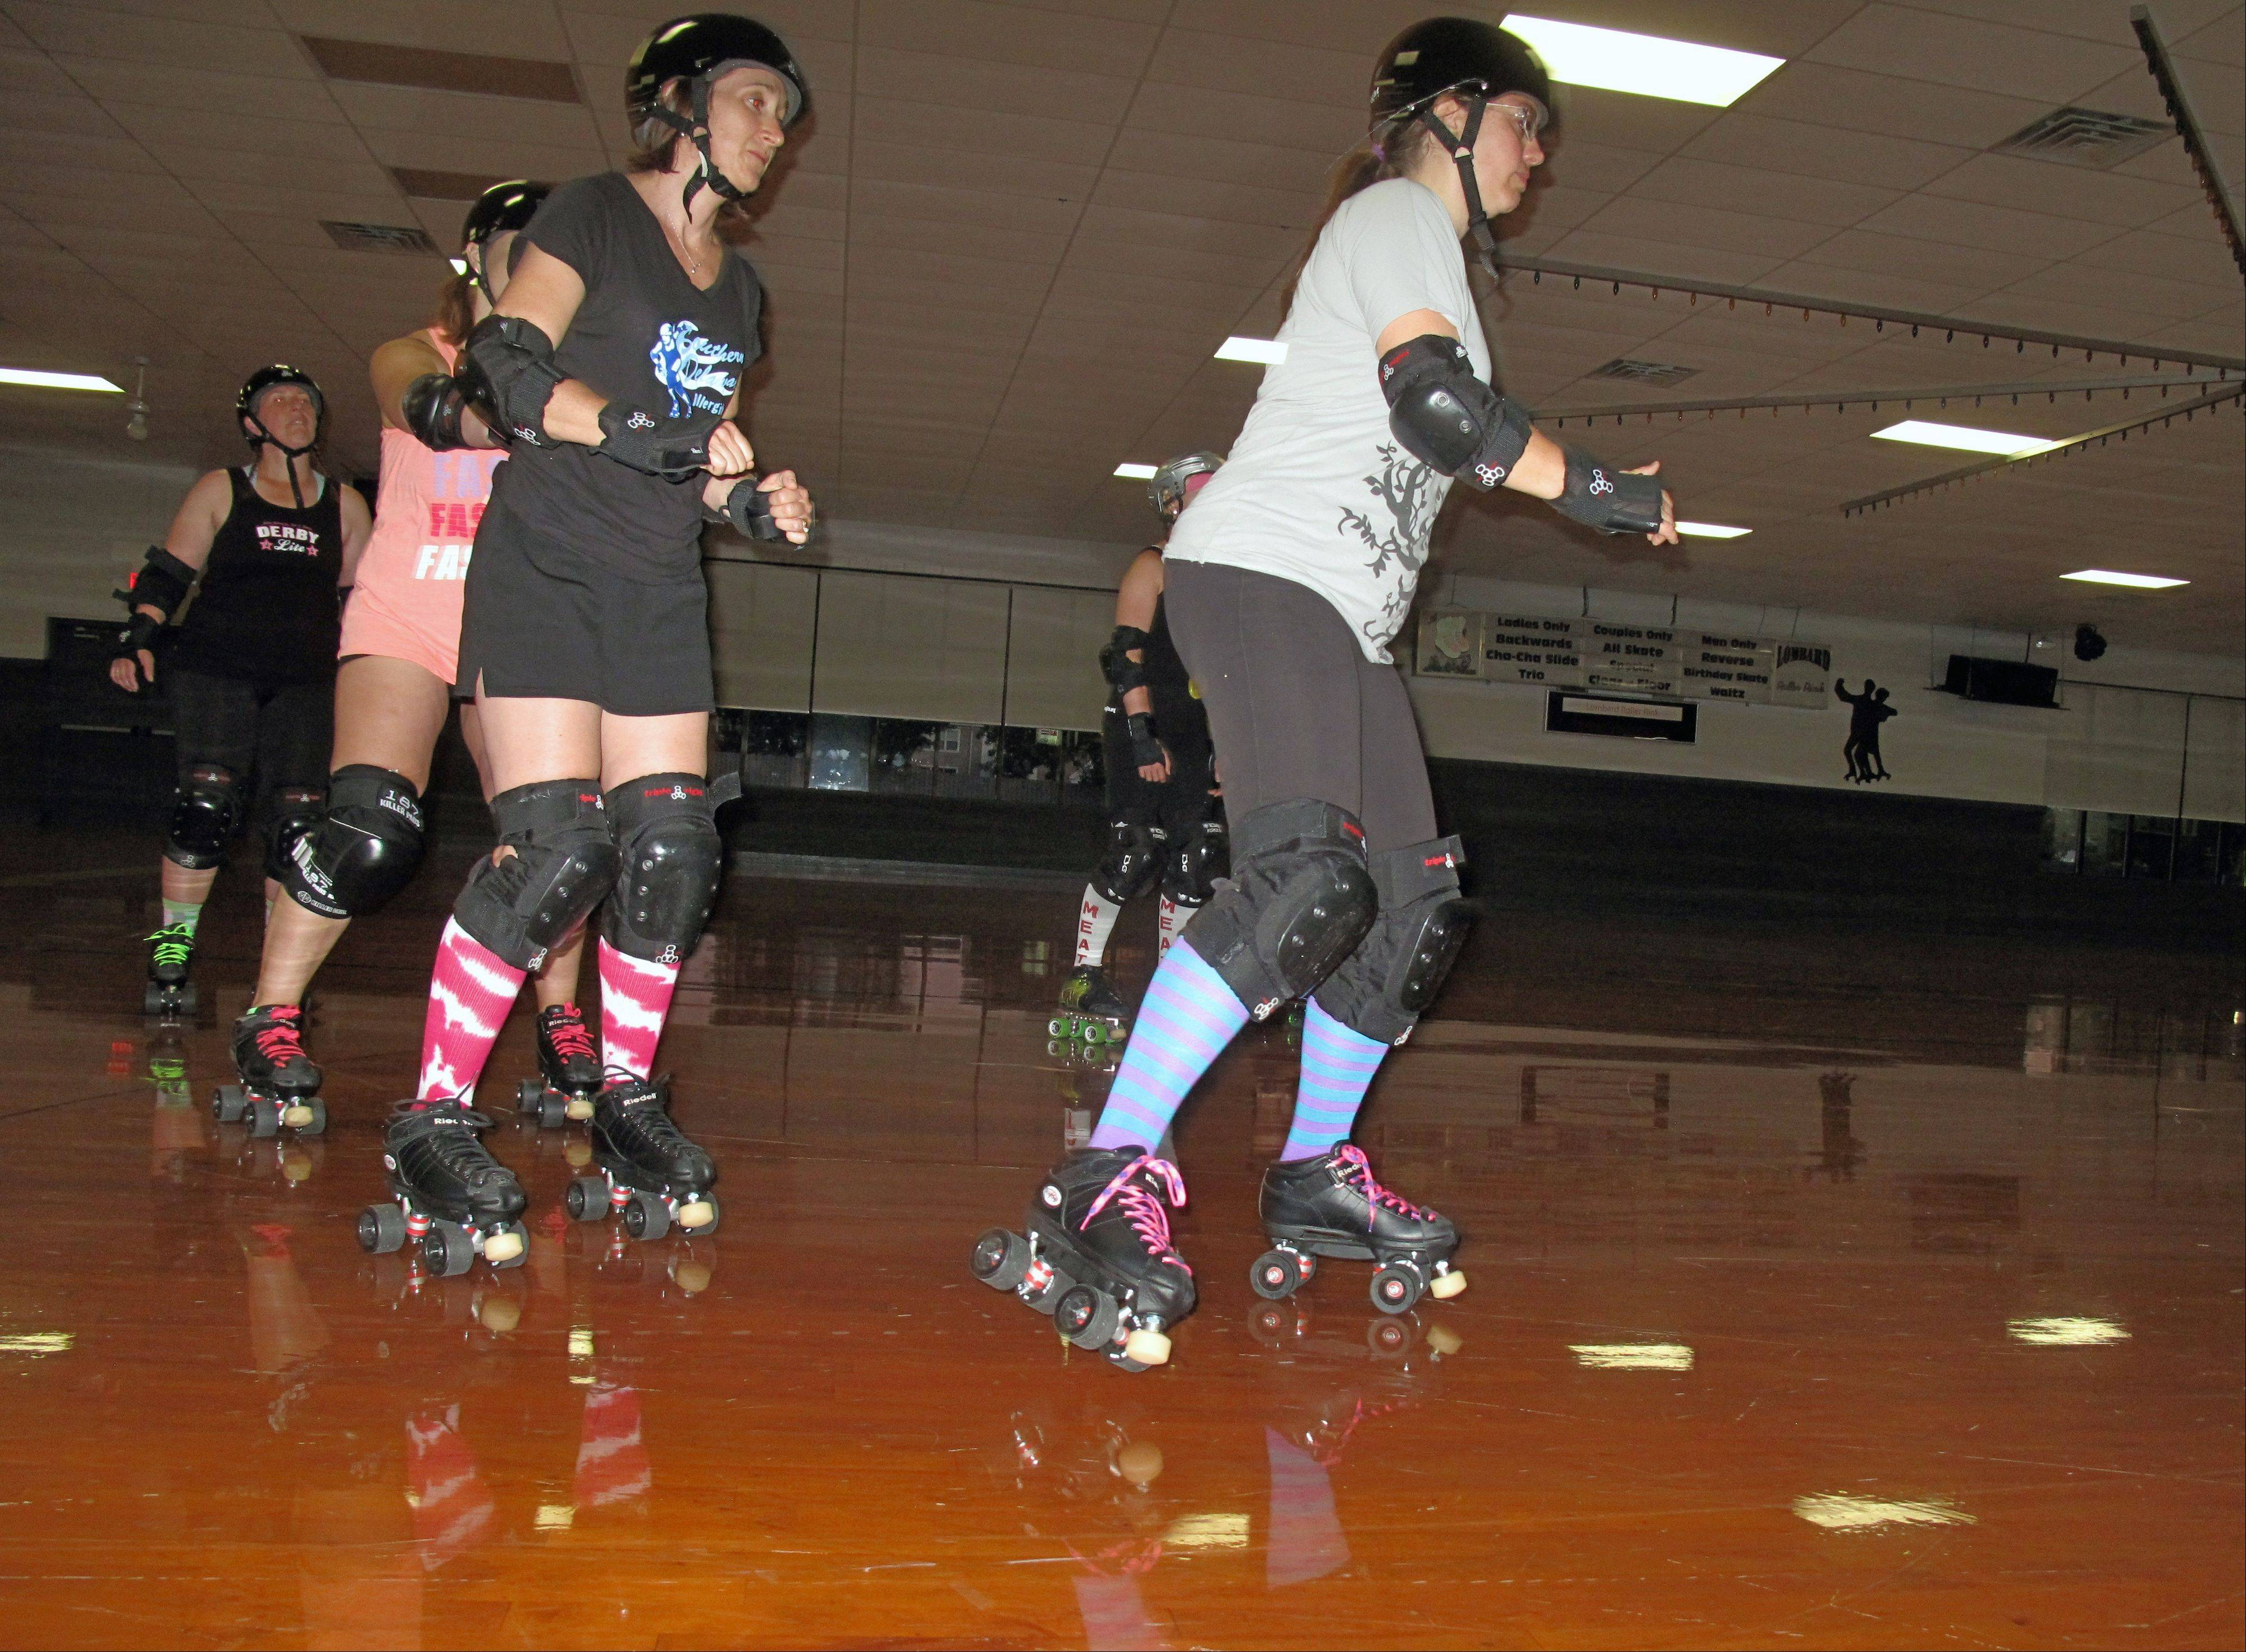 Derby Lite participants Meg Dudek of Frankfort and Melissa Monroe of Mokena lead a line of skaters during a recent fitness class. Derby Lite classes use the drills of classic women's roller derby -- without the body-slamming contact -- as the foundation for a workout.